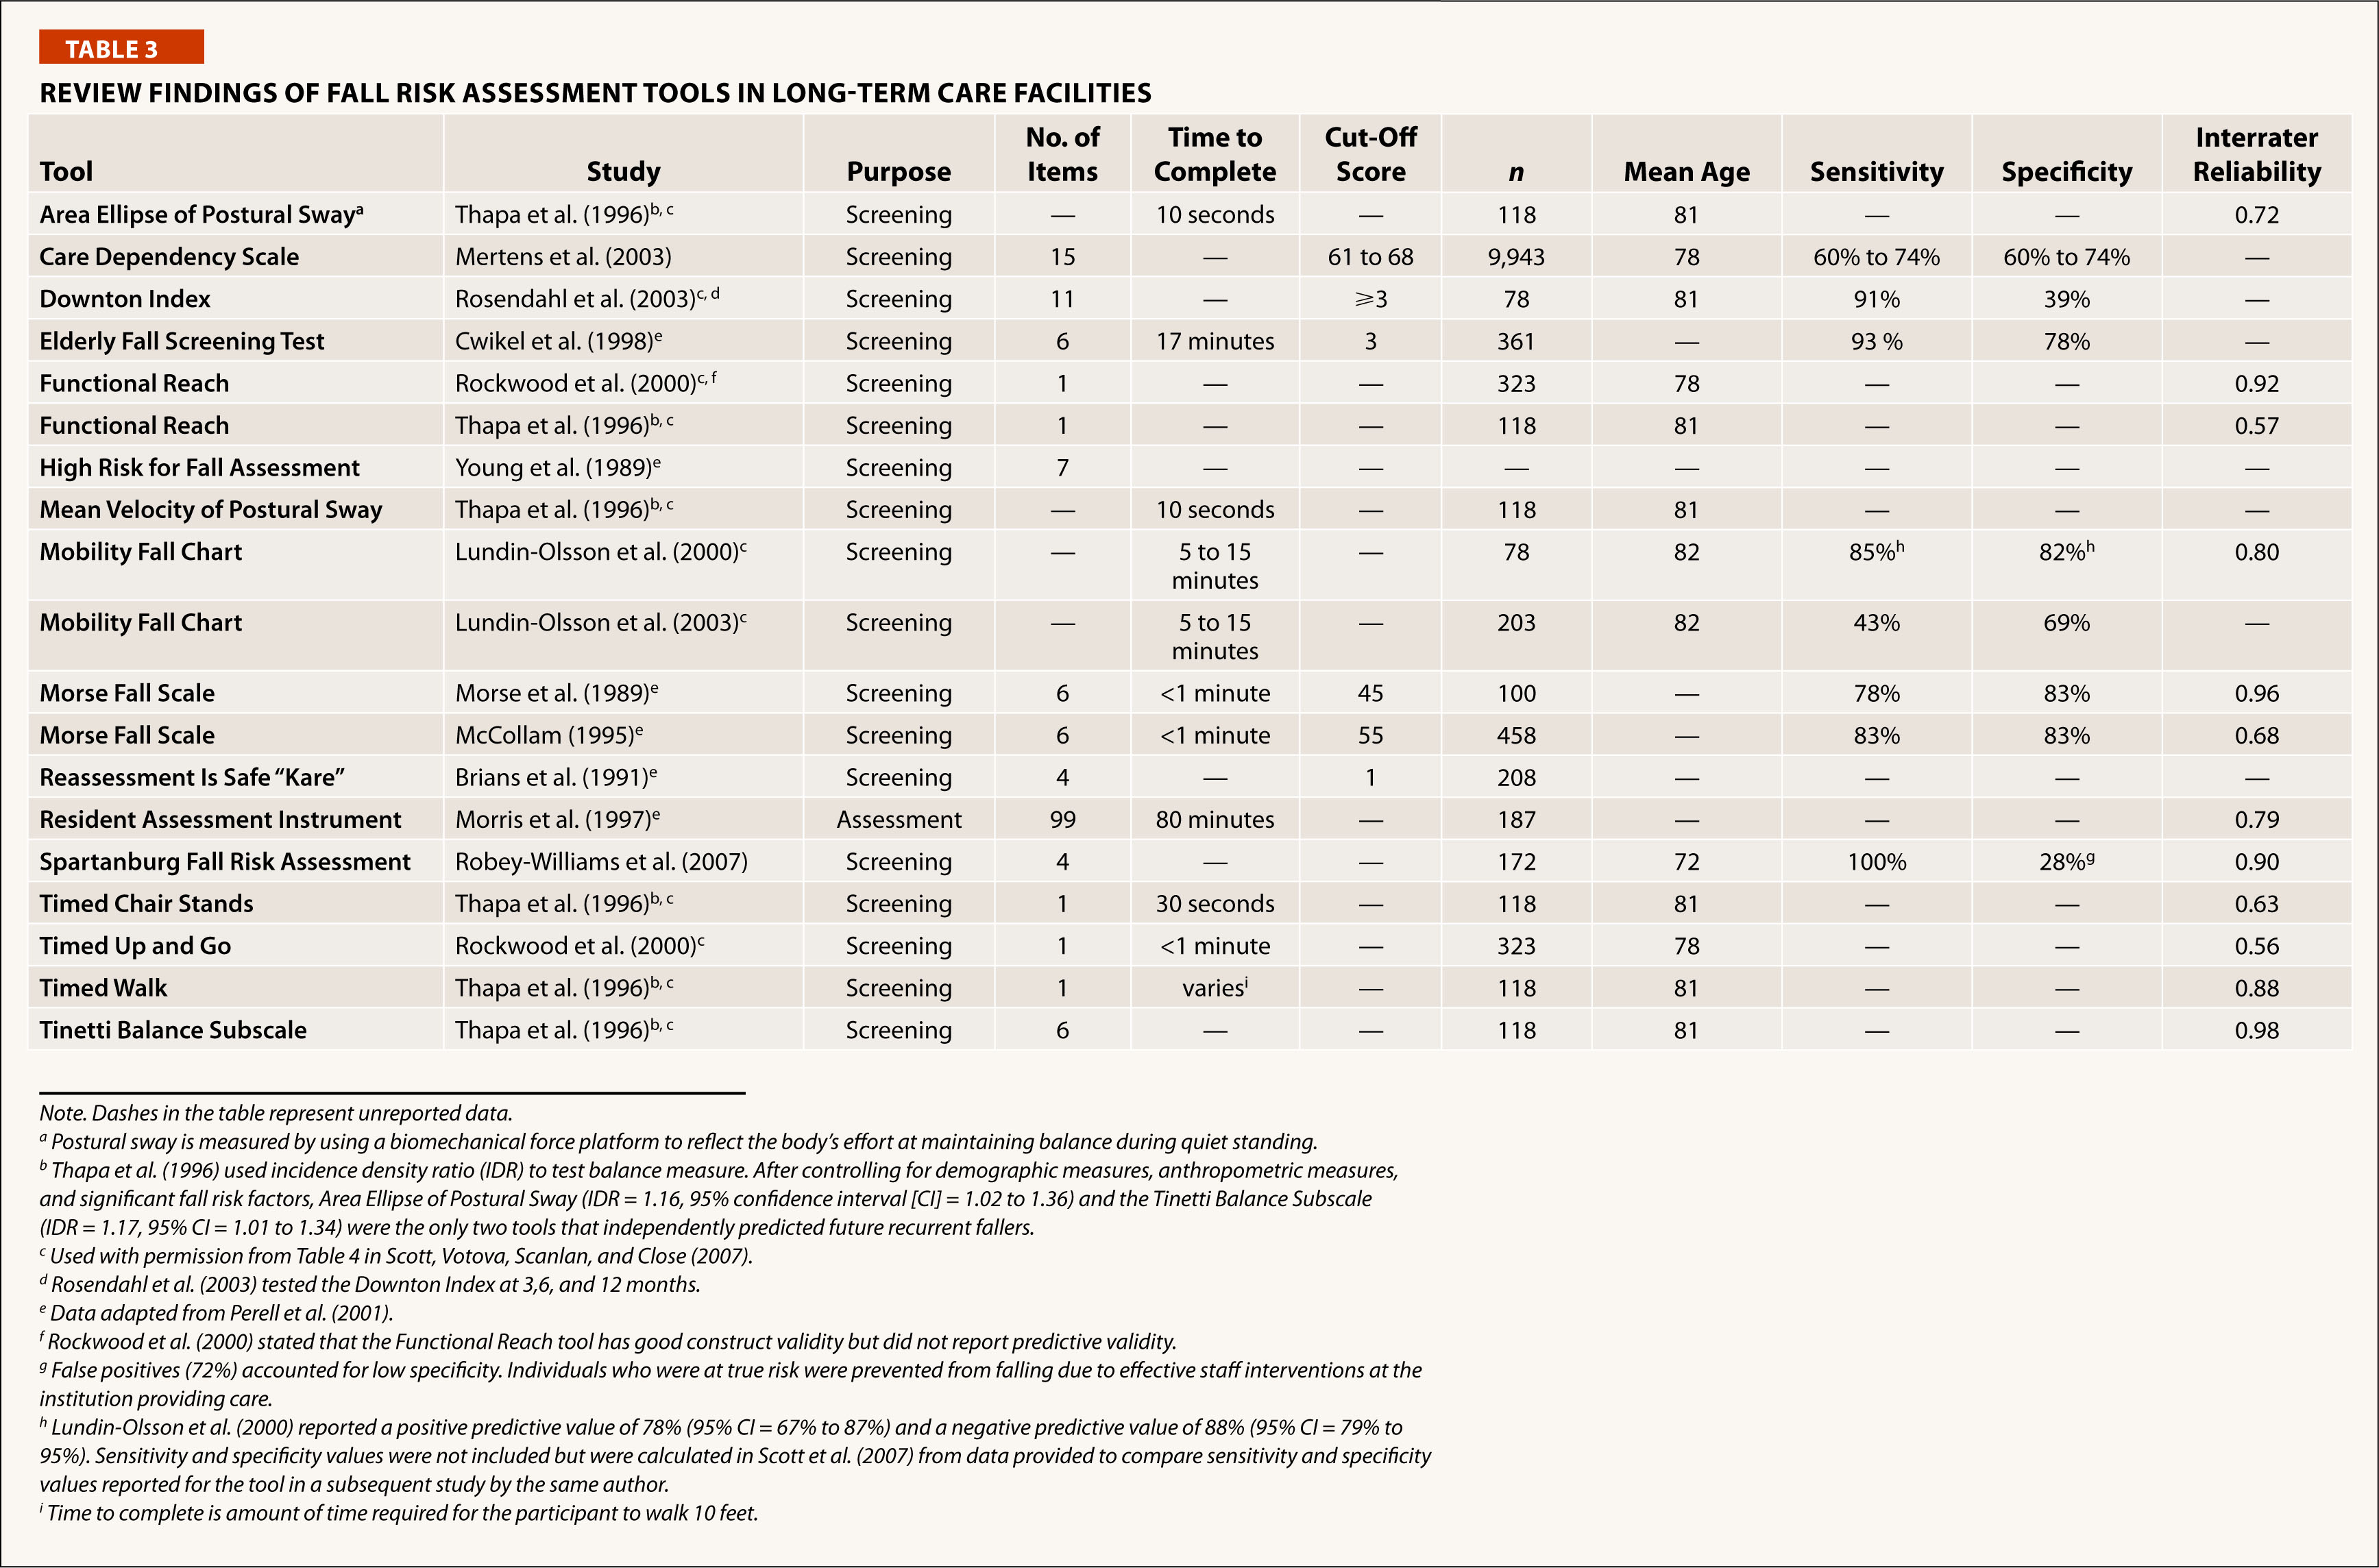 Review Findings of Fall Risk Assessment Tools in Long-Term Care Facilities